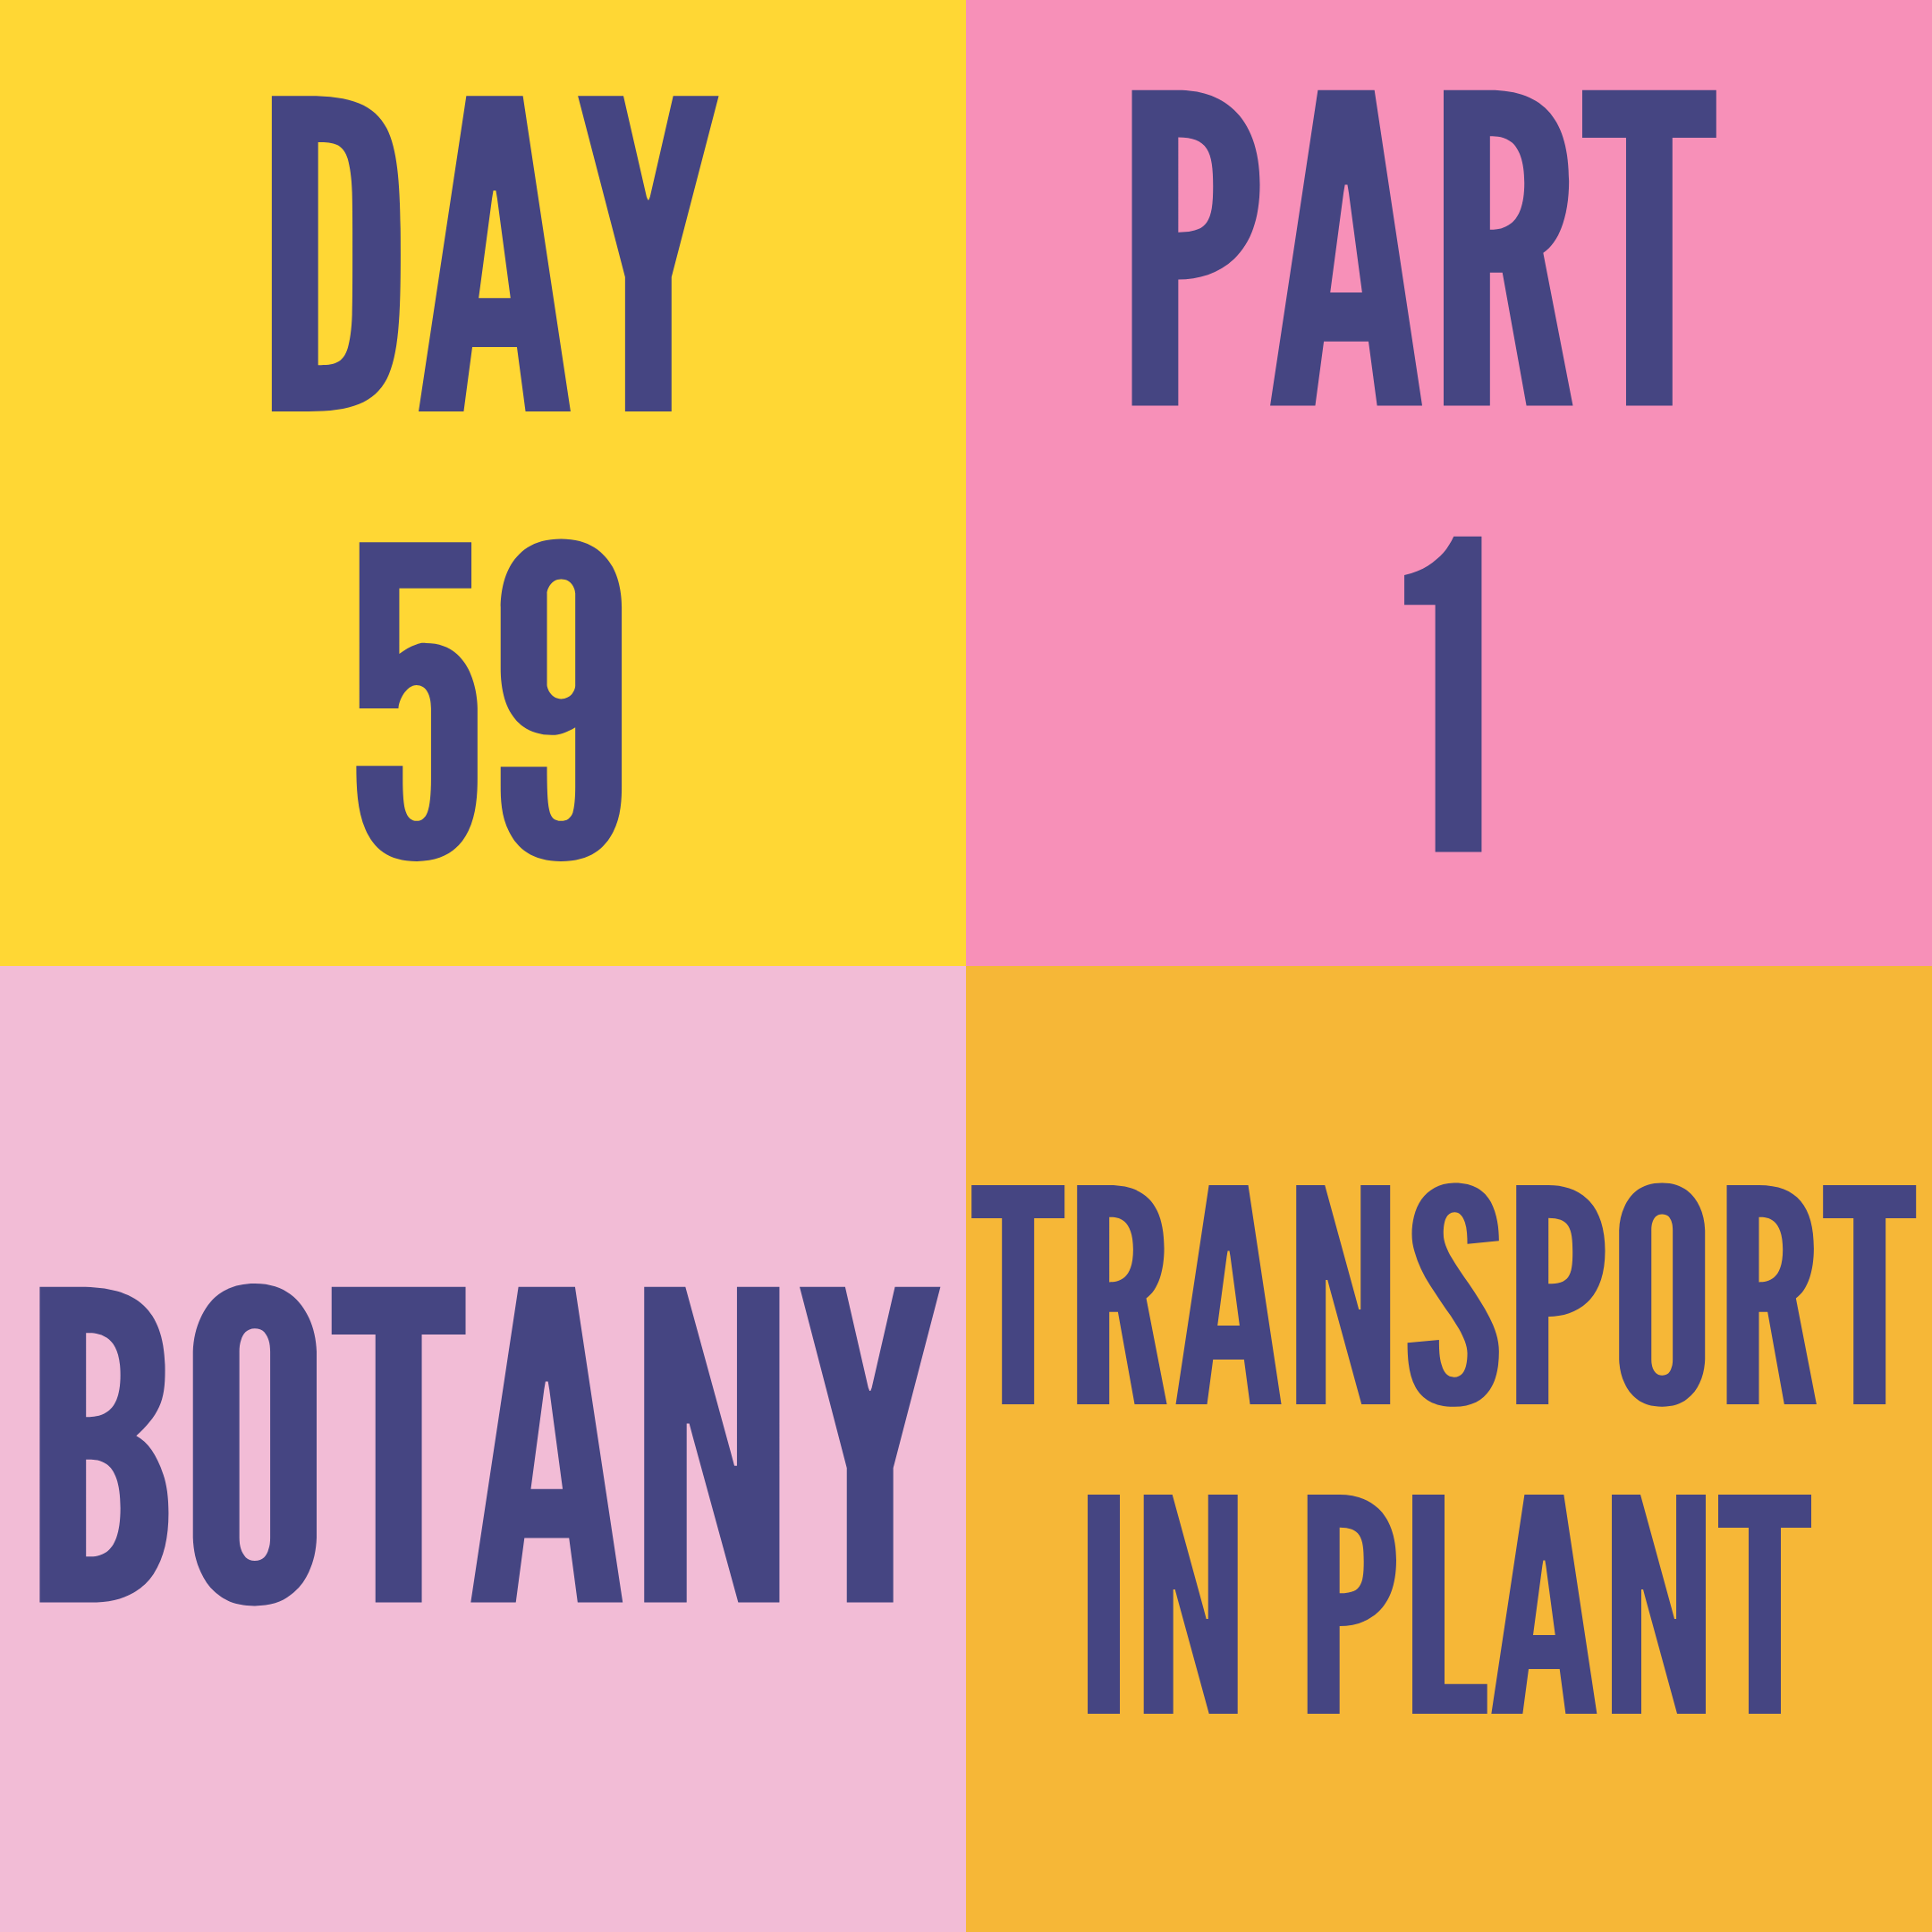 DAY-59 PART-1 TRANSPORT IN PLANT